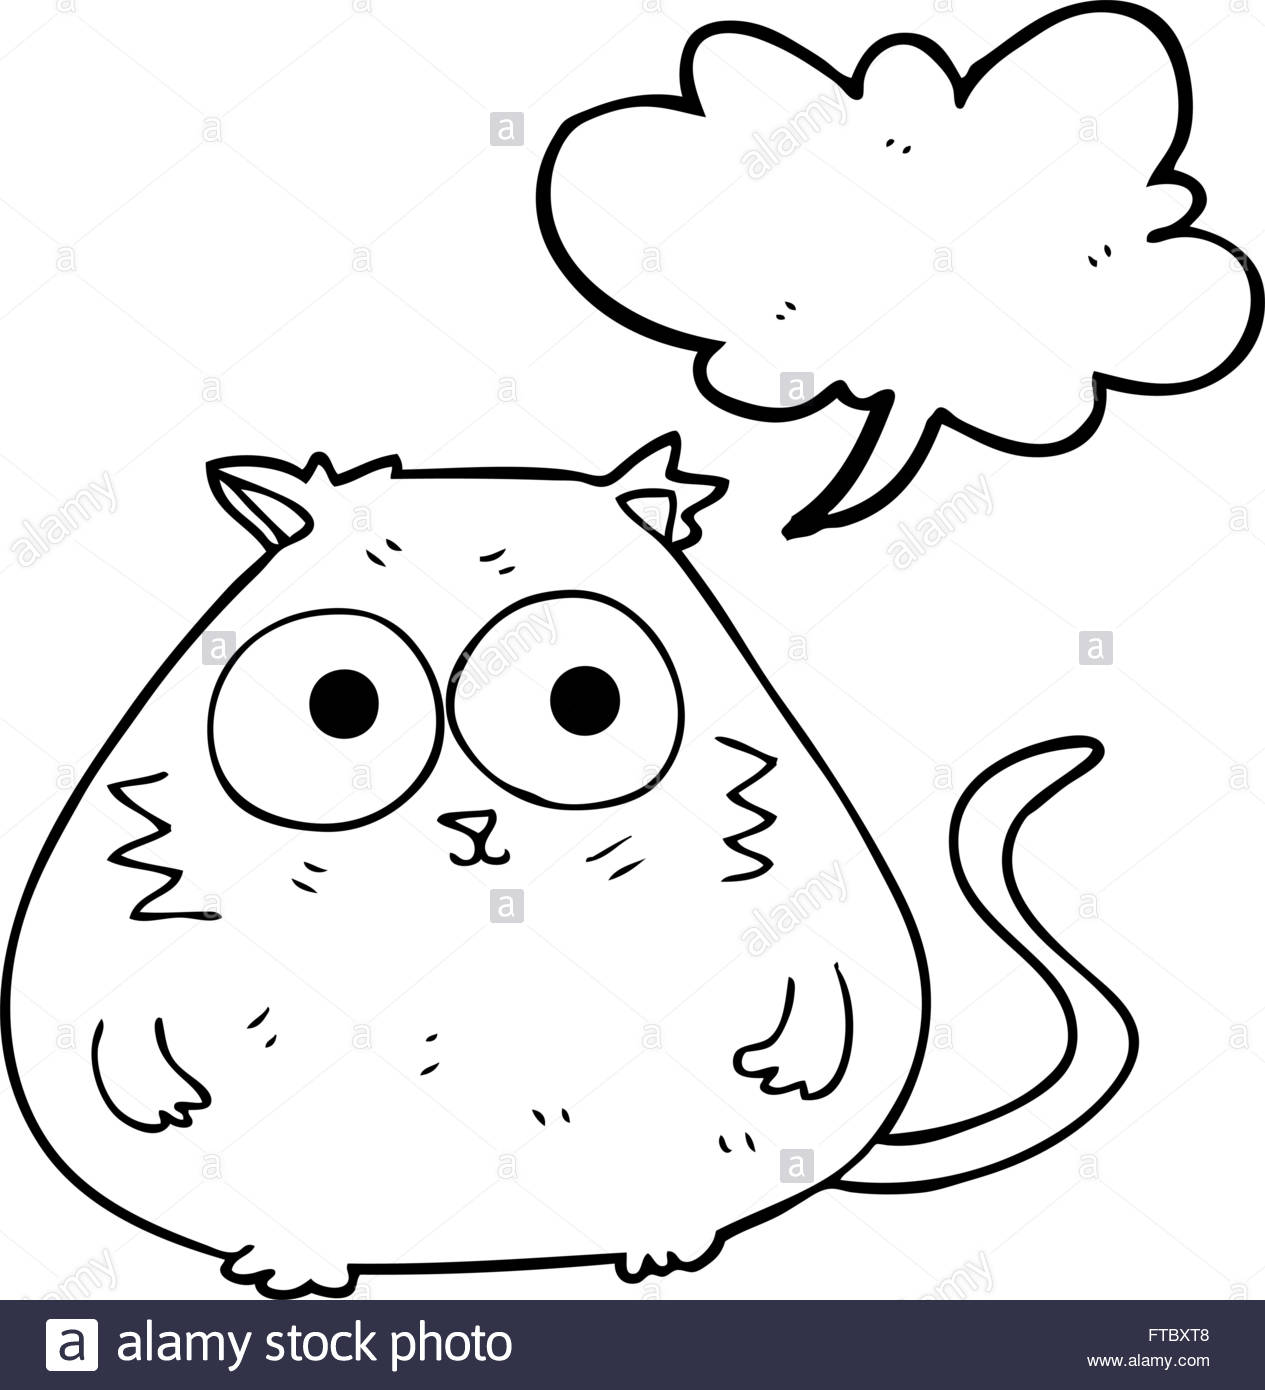 1265x1390 Freehand Drawn Speech Bubble Cartoon Fat Cat Stock Vector Art